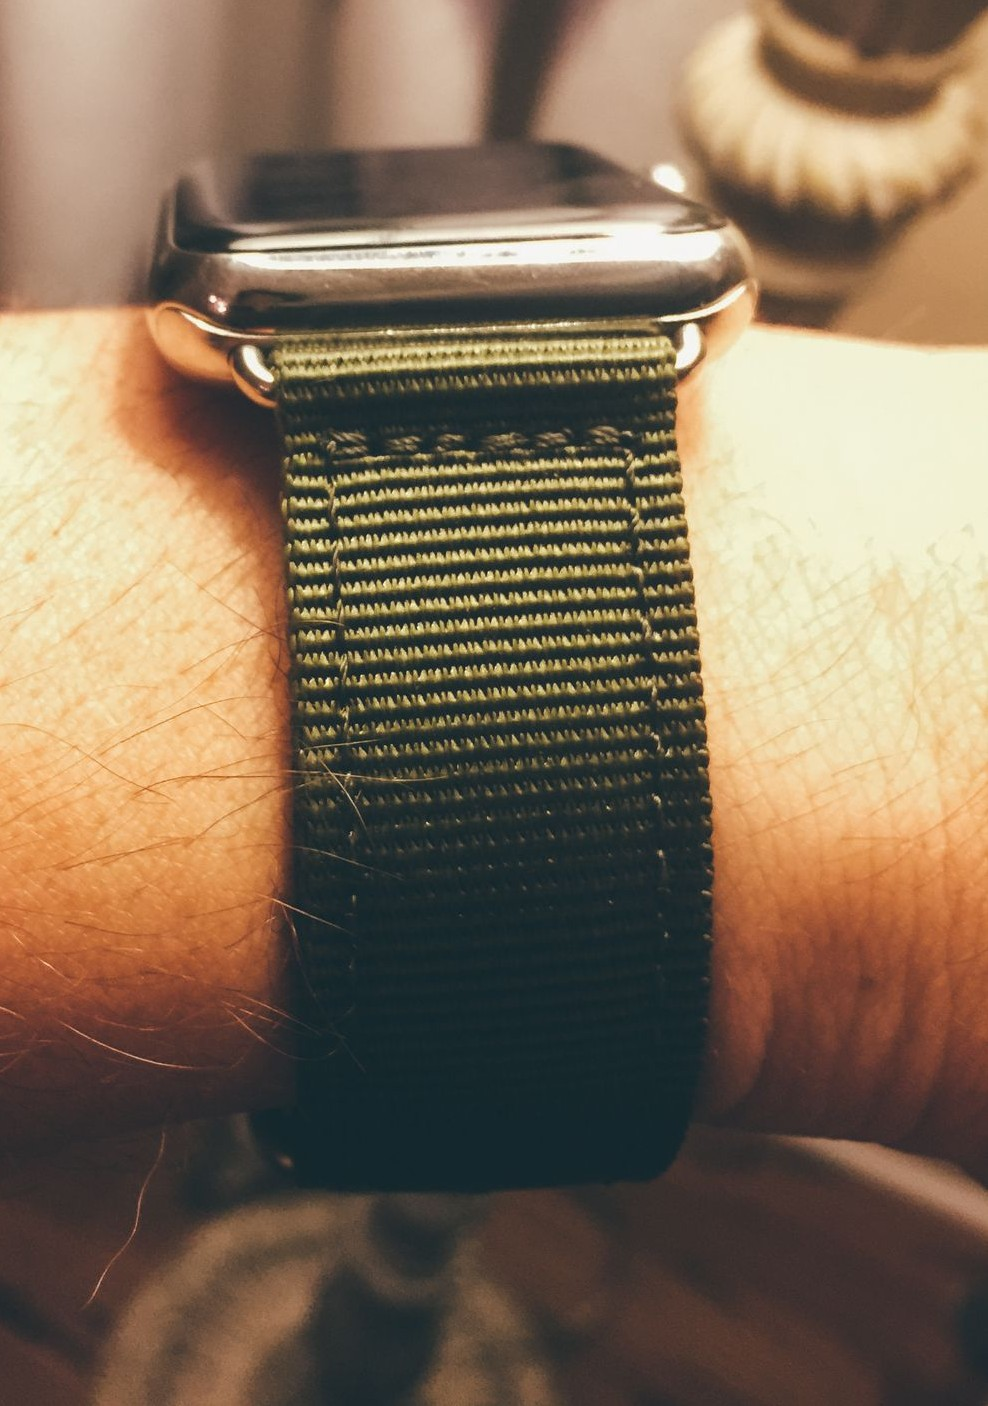 The nylon band is extremely comfortable and not a material that Apple offers.